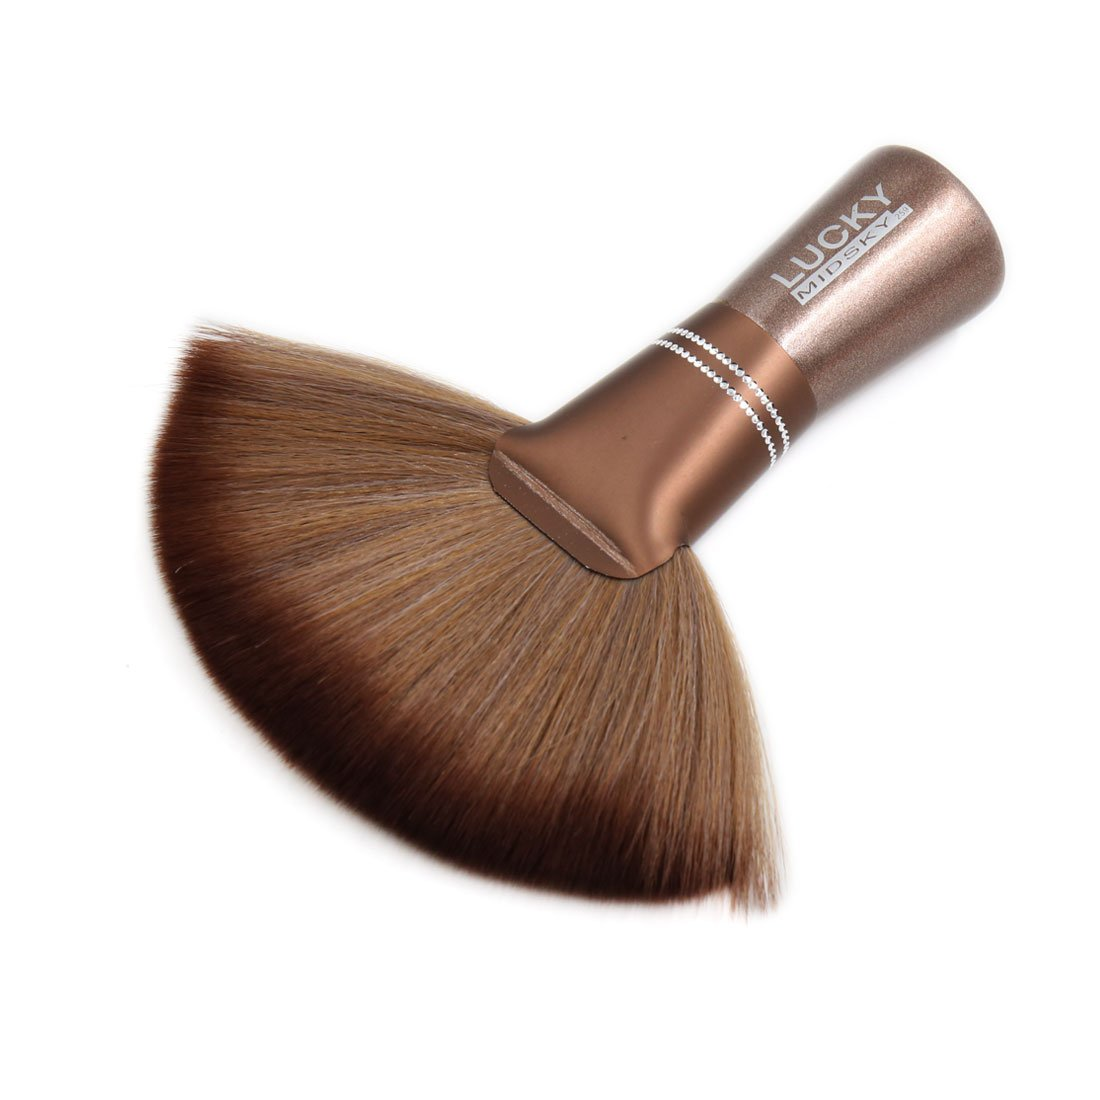 Sourcingmap Brown Soft Fiber Neck Duster Salon Stylist Barber Brush Hair Cutting Cleaning Tool a17022400ux0273